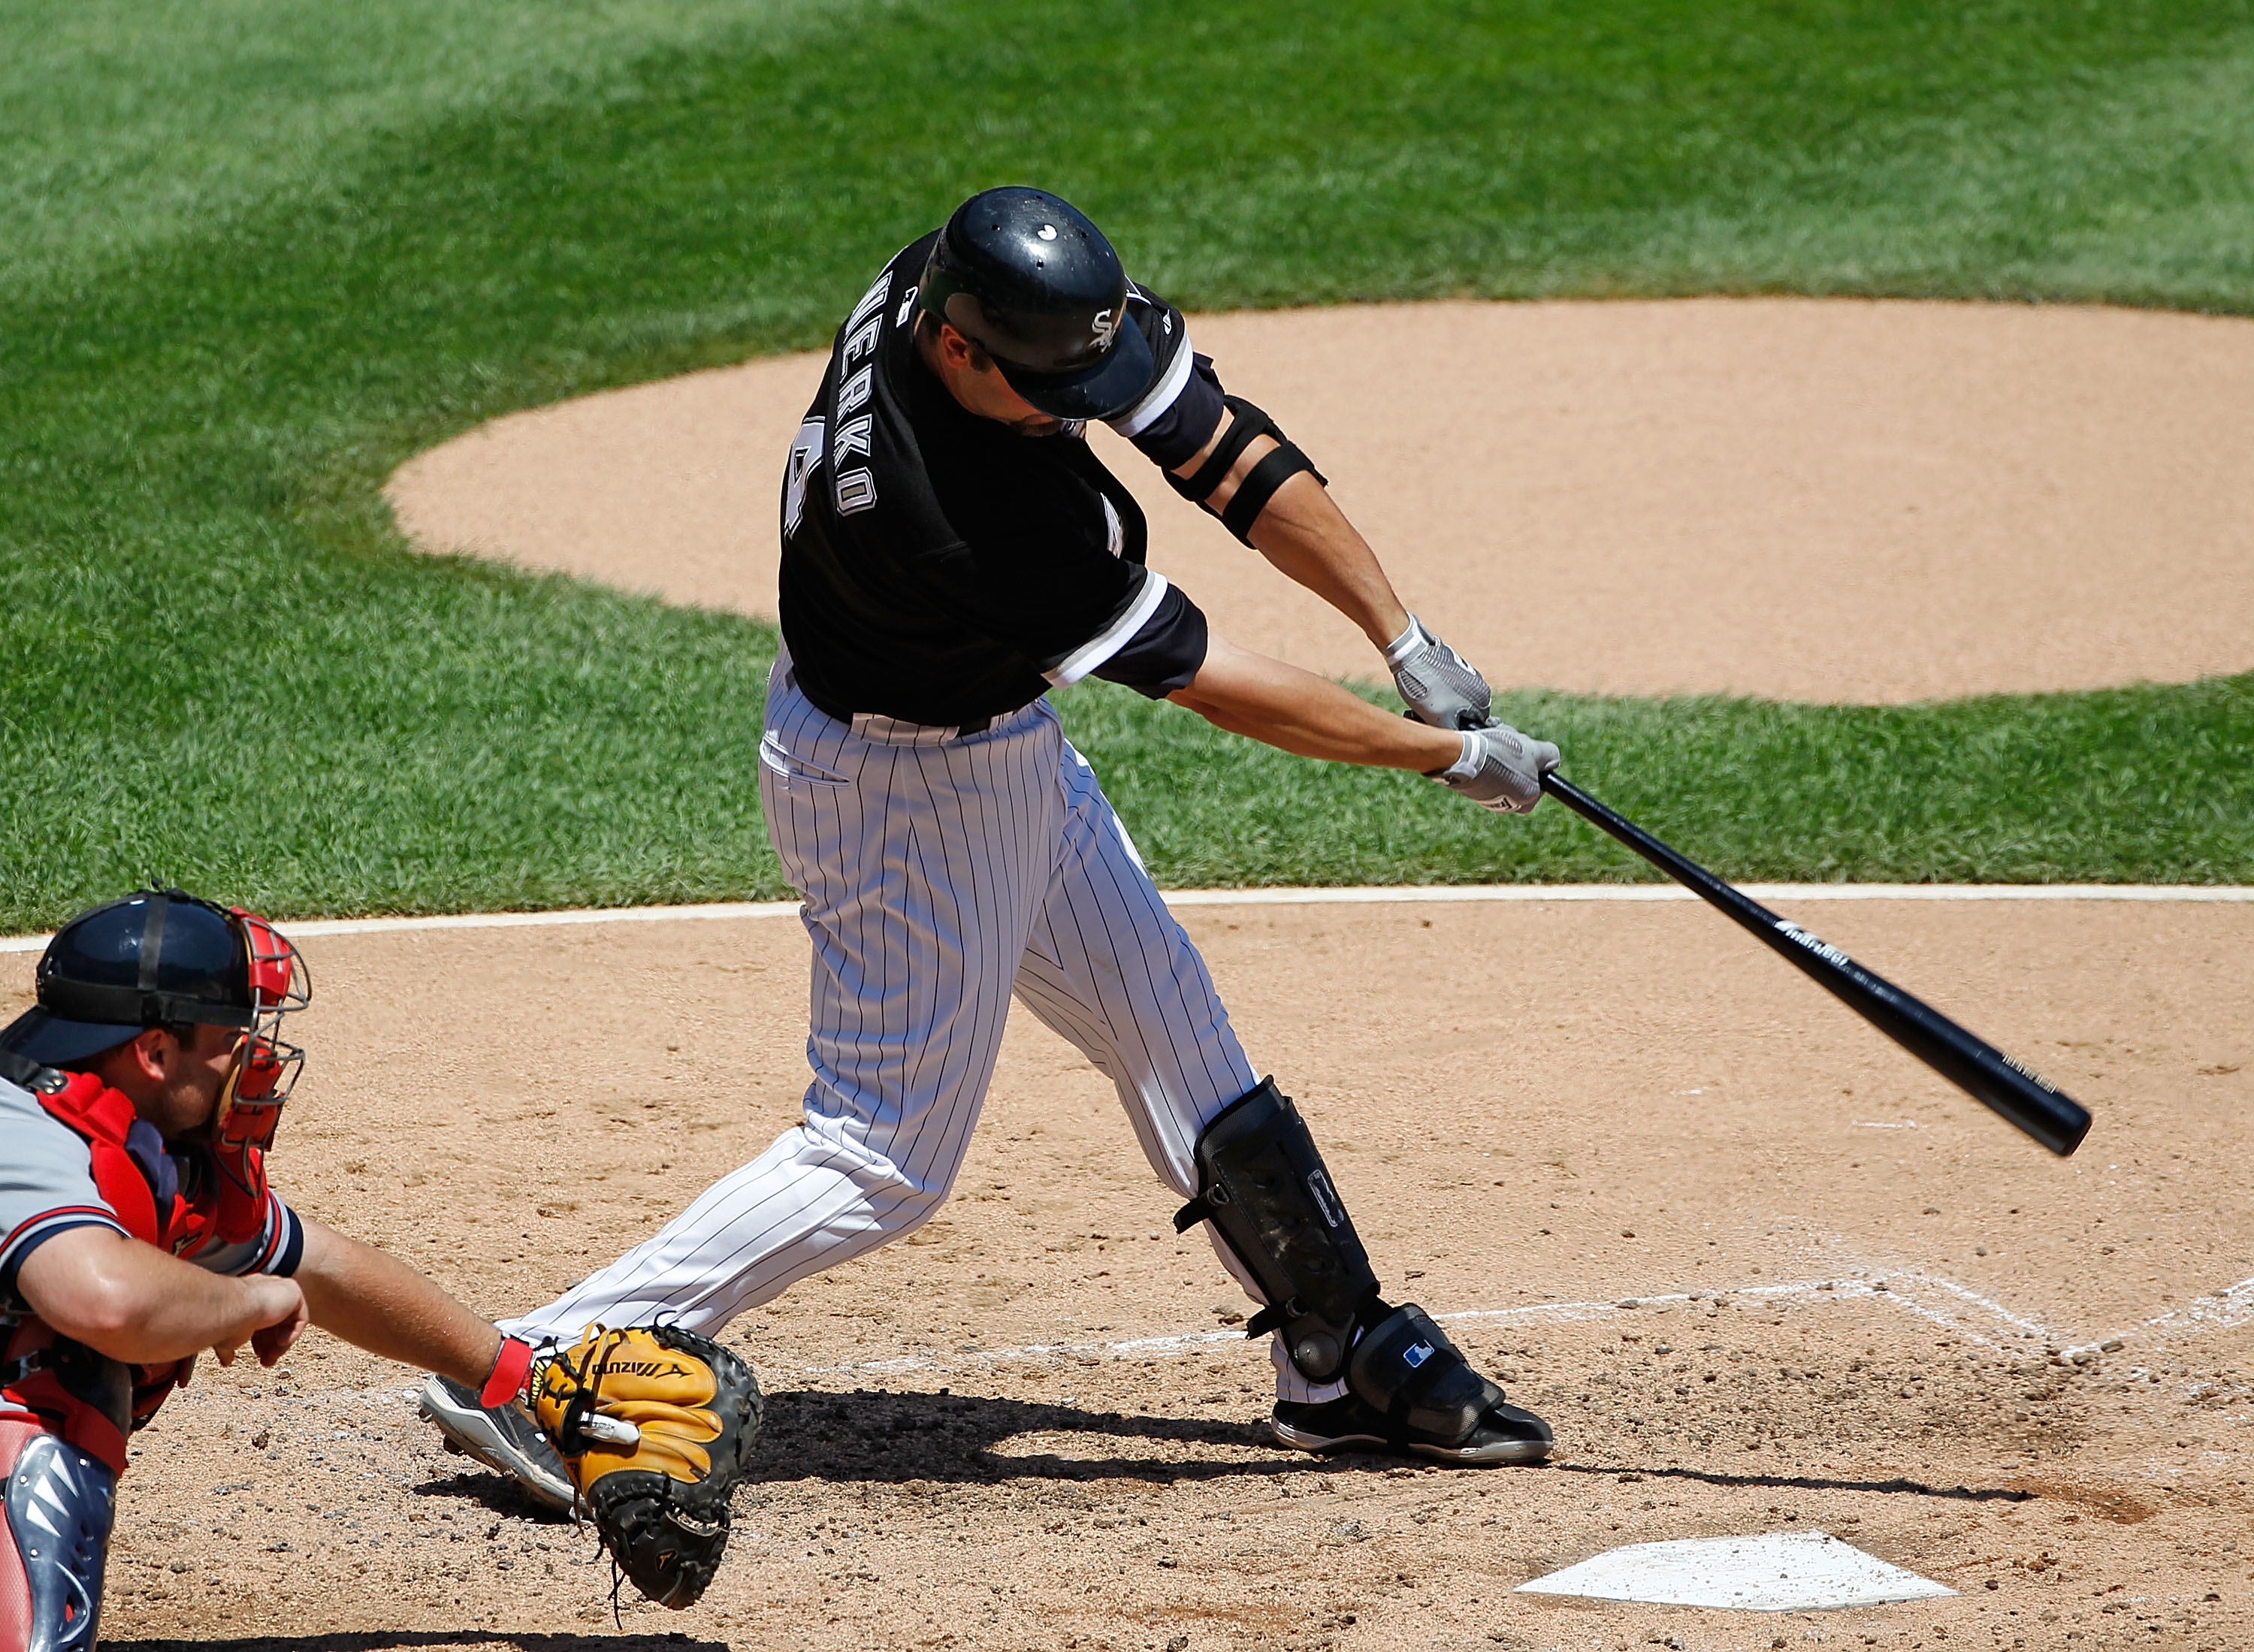 CHICAGO - JUNE 24: Paul Konerko #14 of the Chicago White Sox takes a swing against the Atlanta Braves at U.S. Cellular Field on June 24, 2010 in Chicago, Illinois. The White defeated the Braves 2-0.  (Photo by Jonathan Daniel/Getty Images)